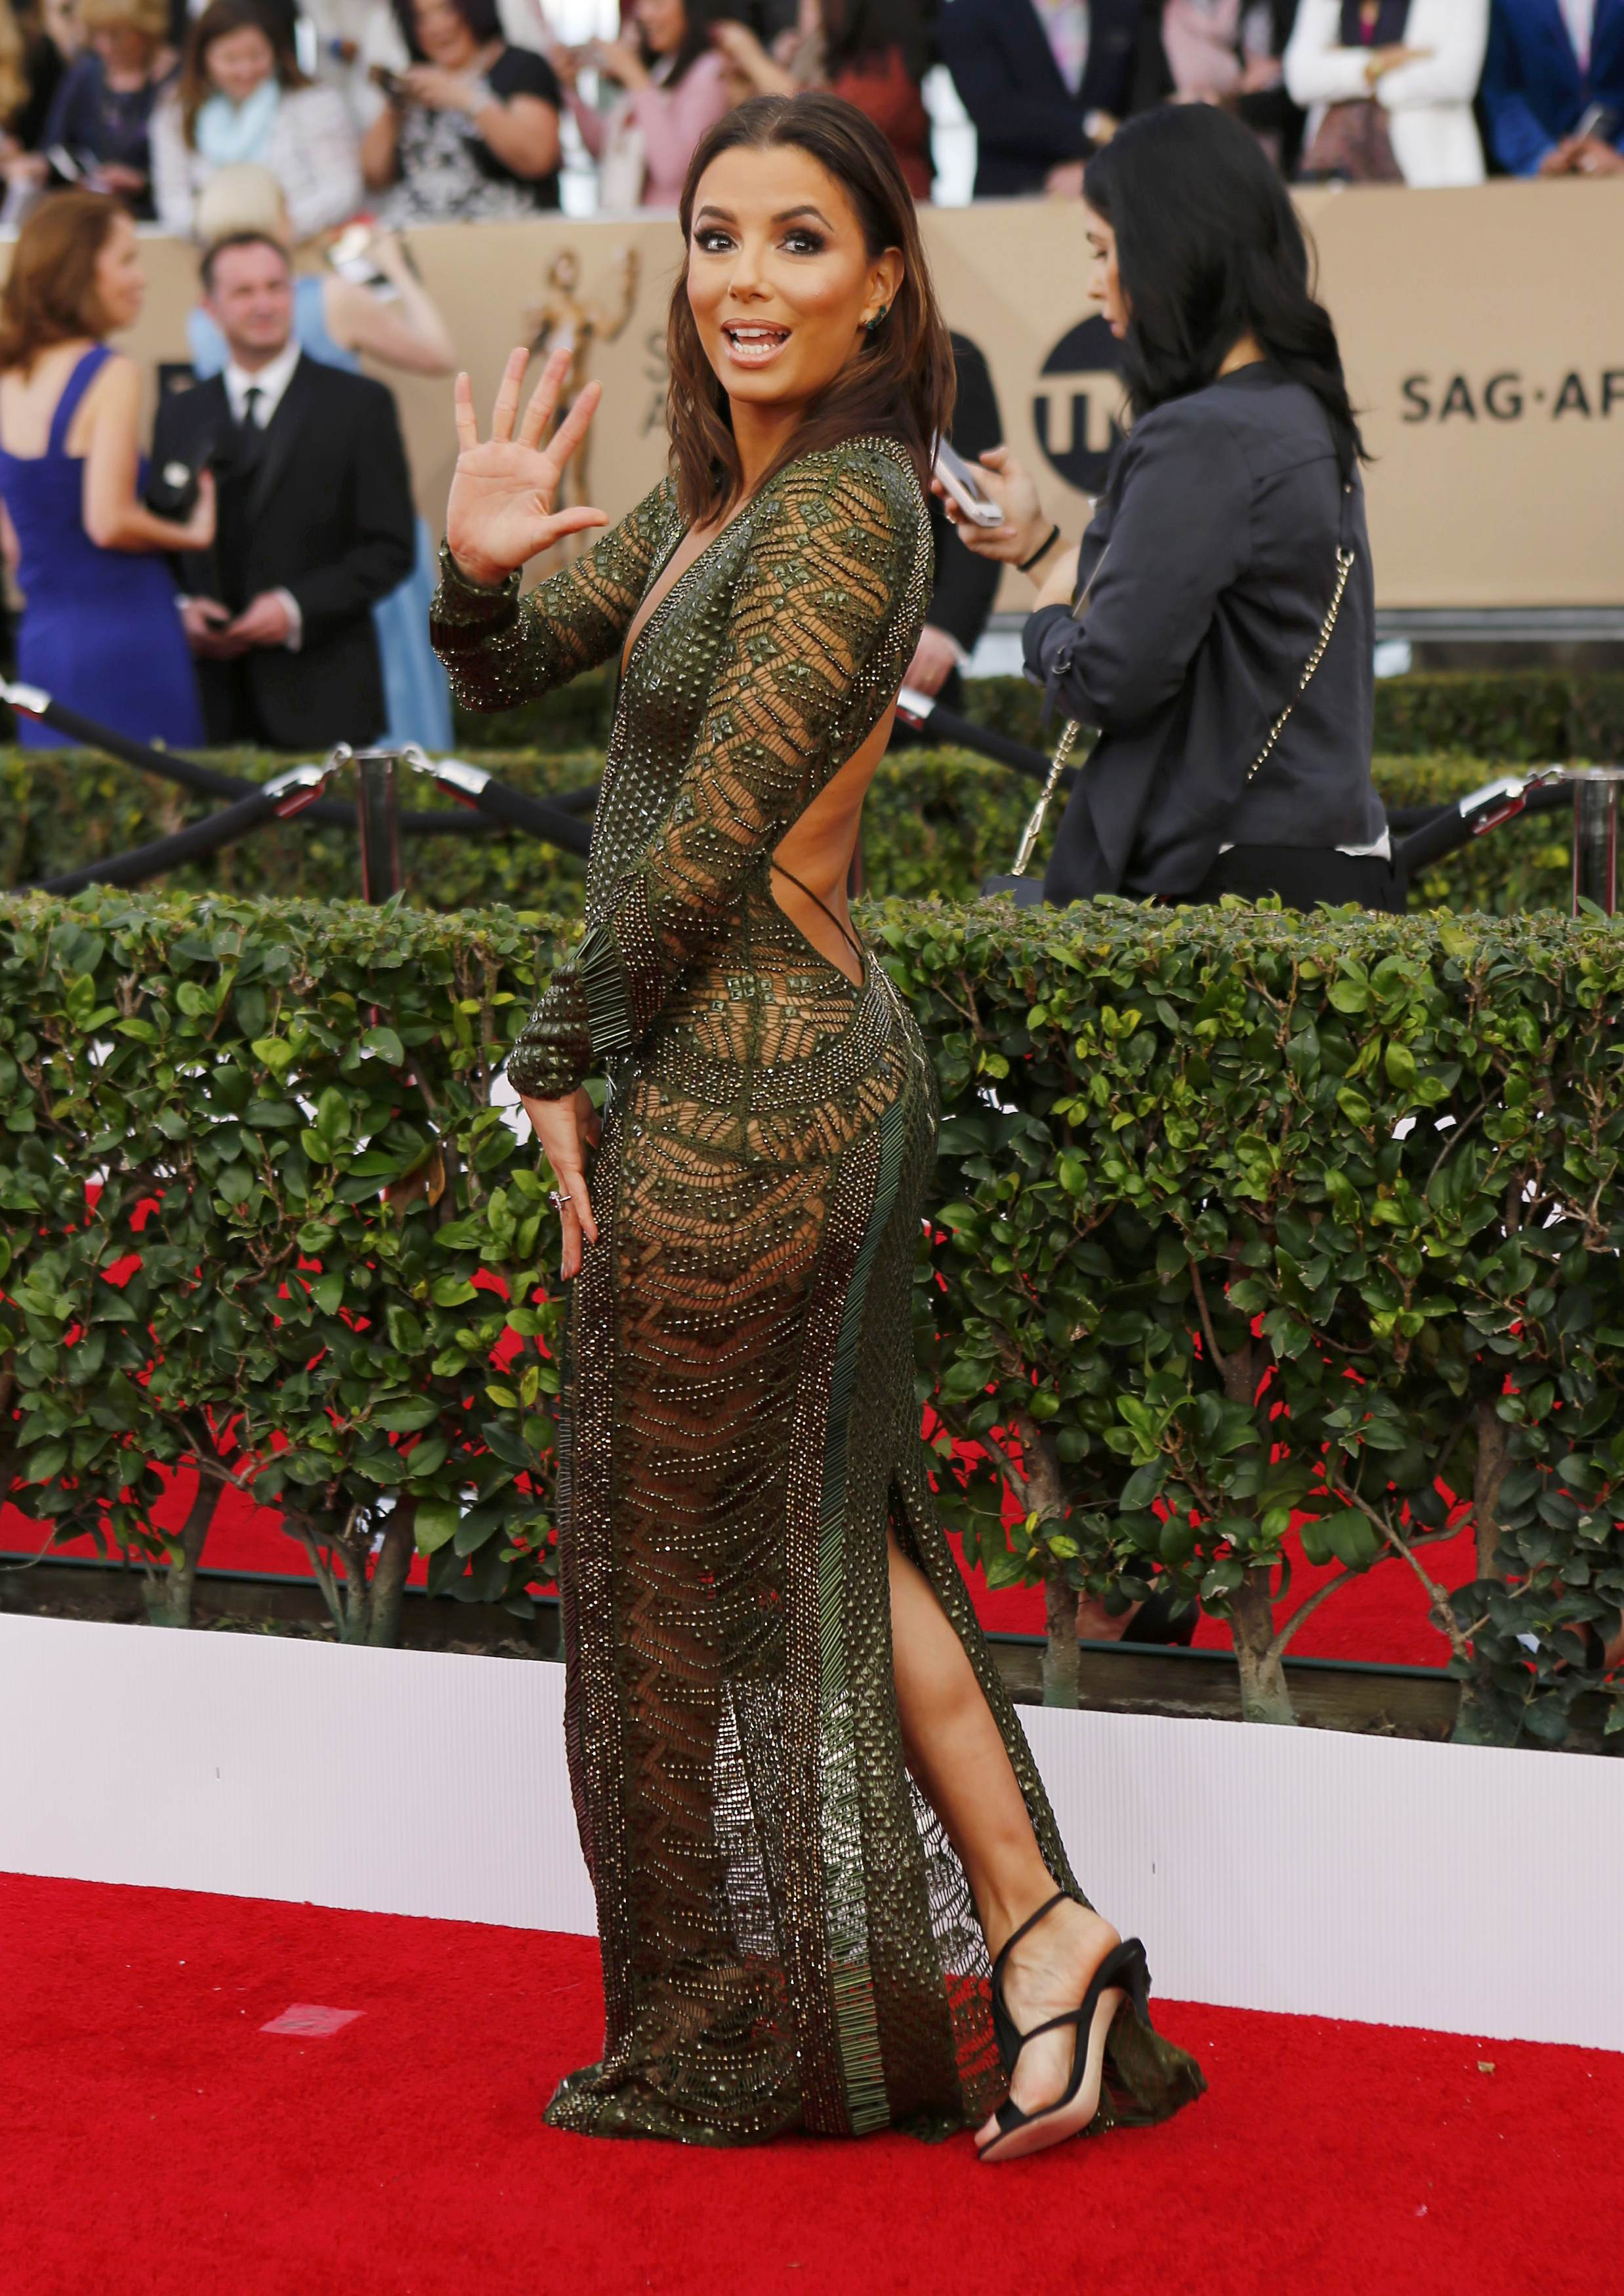 Actress Eva Longoria arrives at the 22nd Screen Actors Guild Awards in Los Angeles